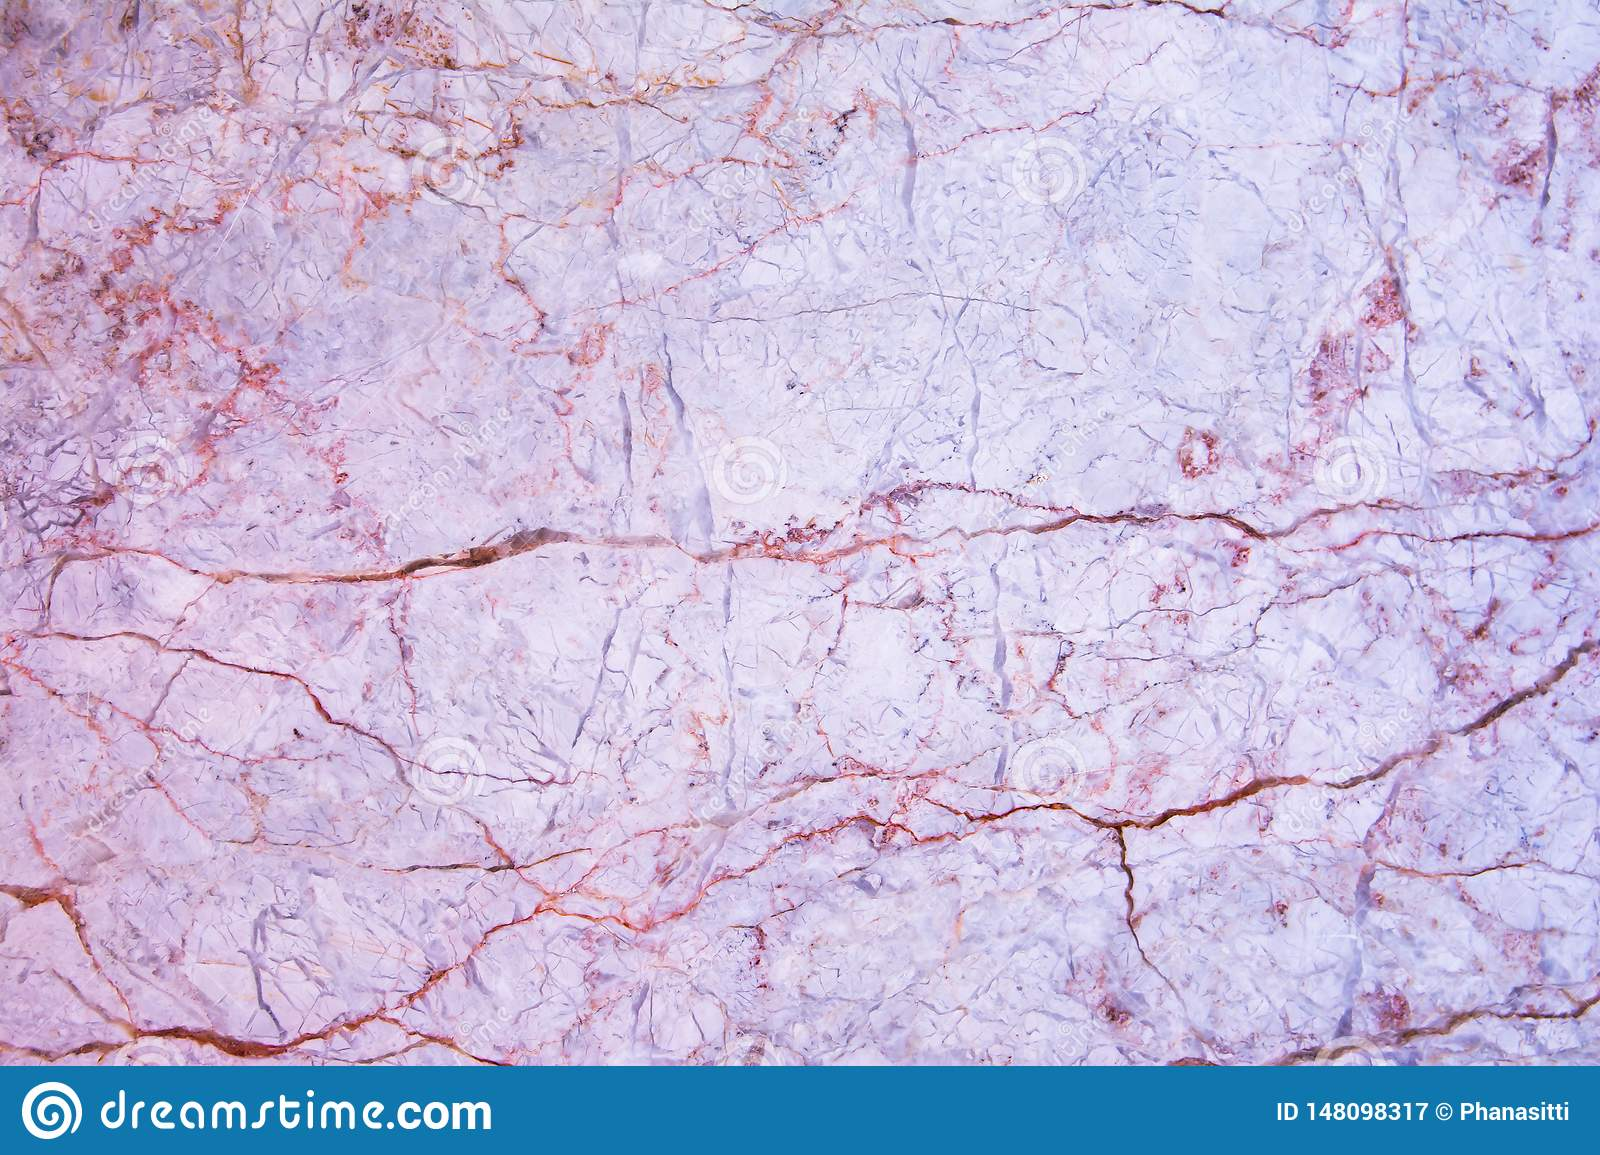 Purple And Pink Marble Texture Background Pink And Purple Marble Texture Background Stock Image Image Of Counter Pink 148098317